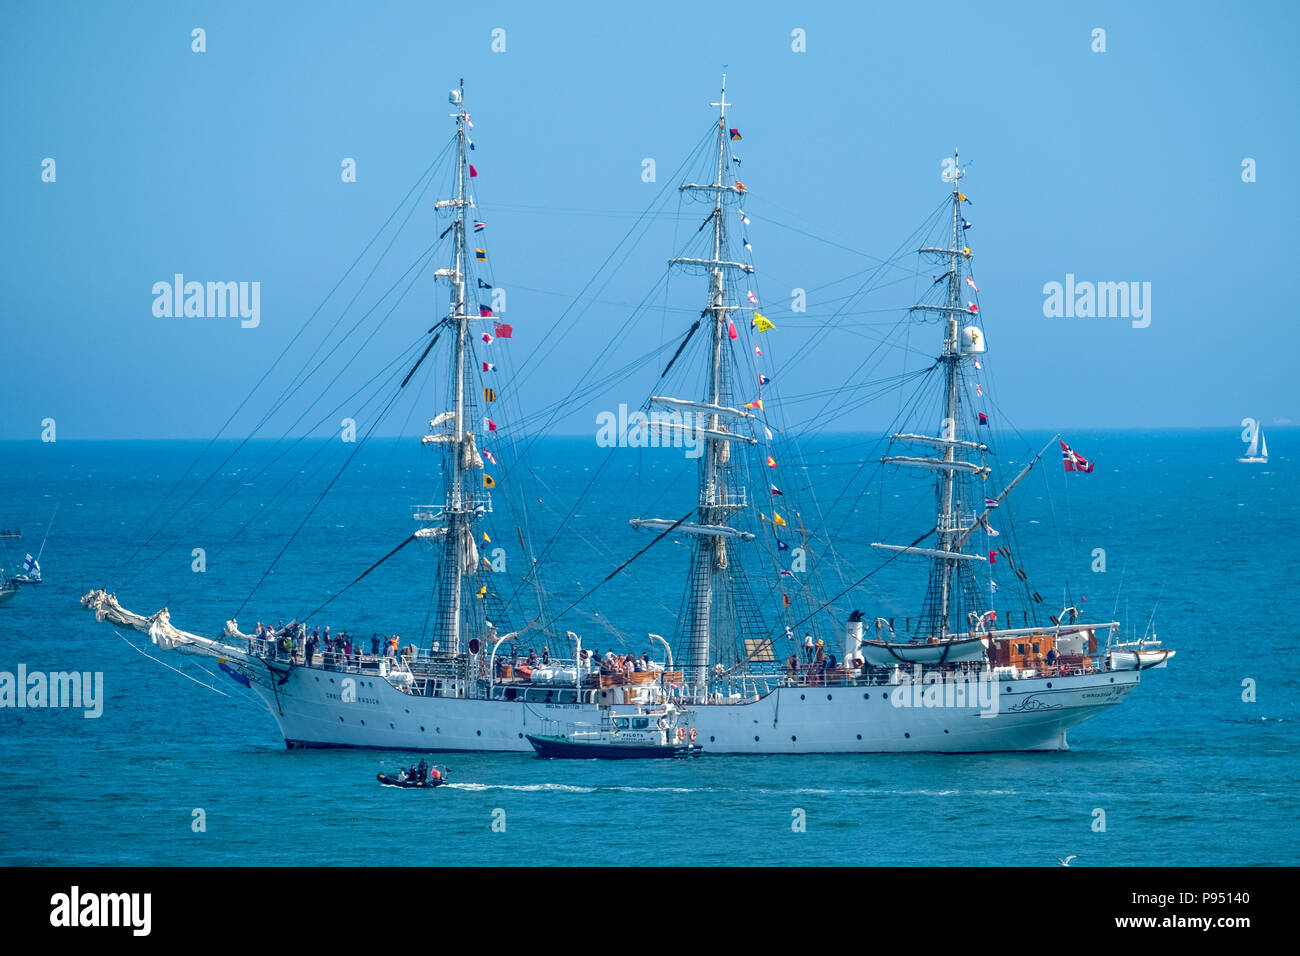 Sunderland, UK. 14th July 2018. The Christian Radich leaving the Port of Sunderland as part of the Tall Ships Race 2018 Credit: Tim Withnall/Alamy Live News - Stock Image